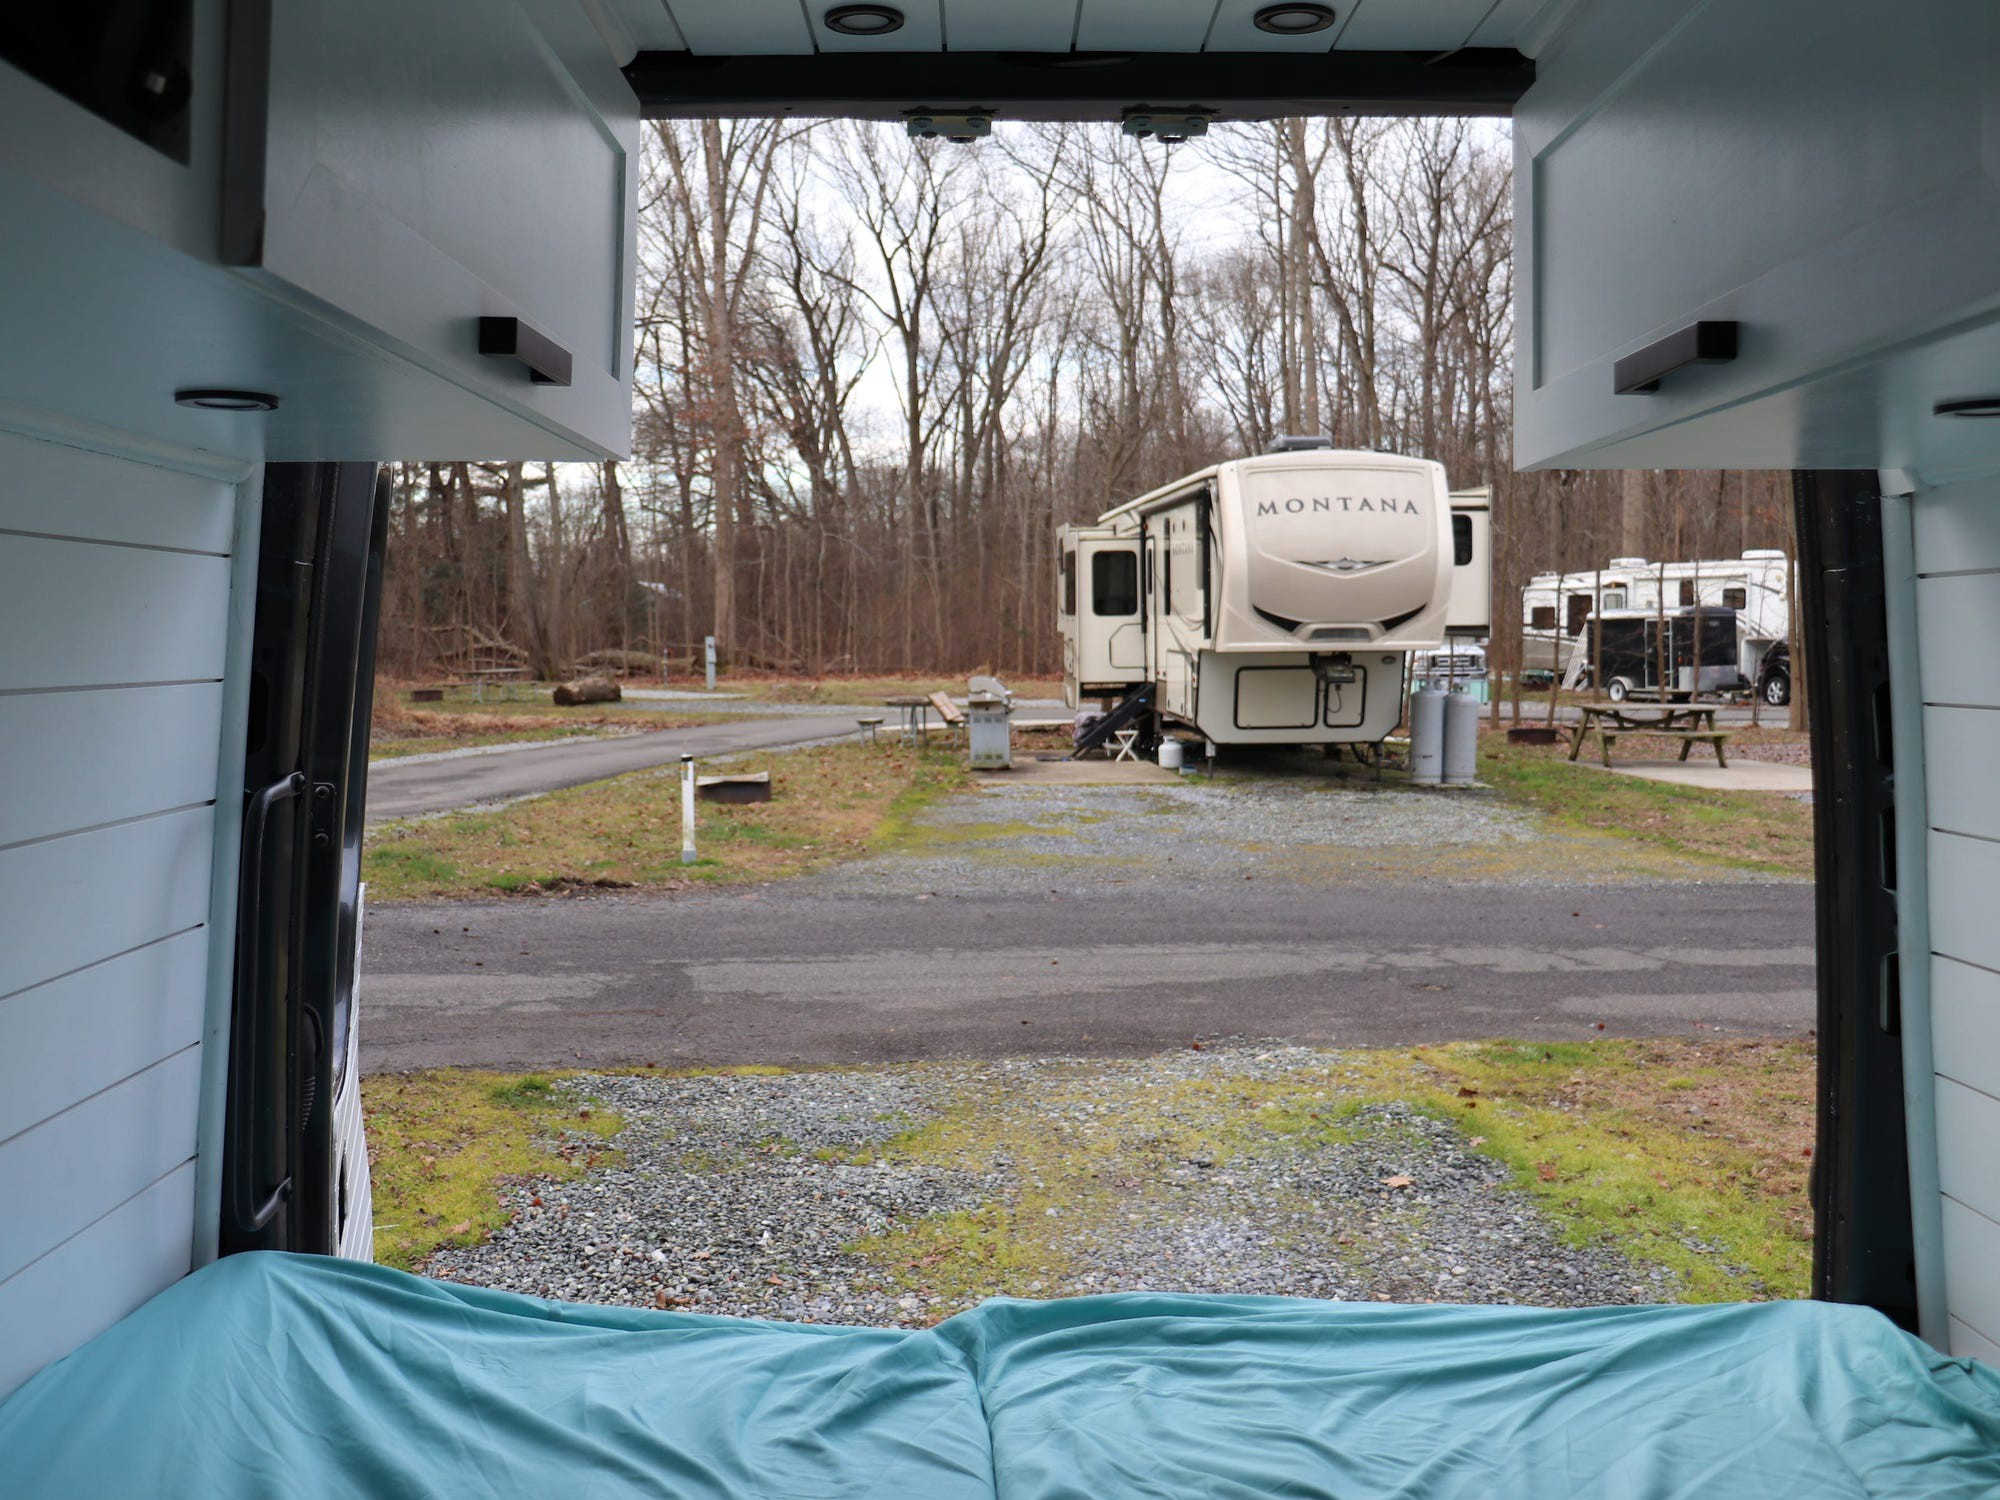 The view of a camper from inside the van.